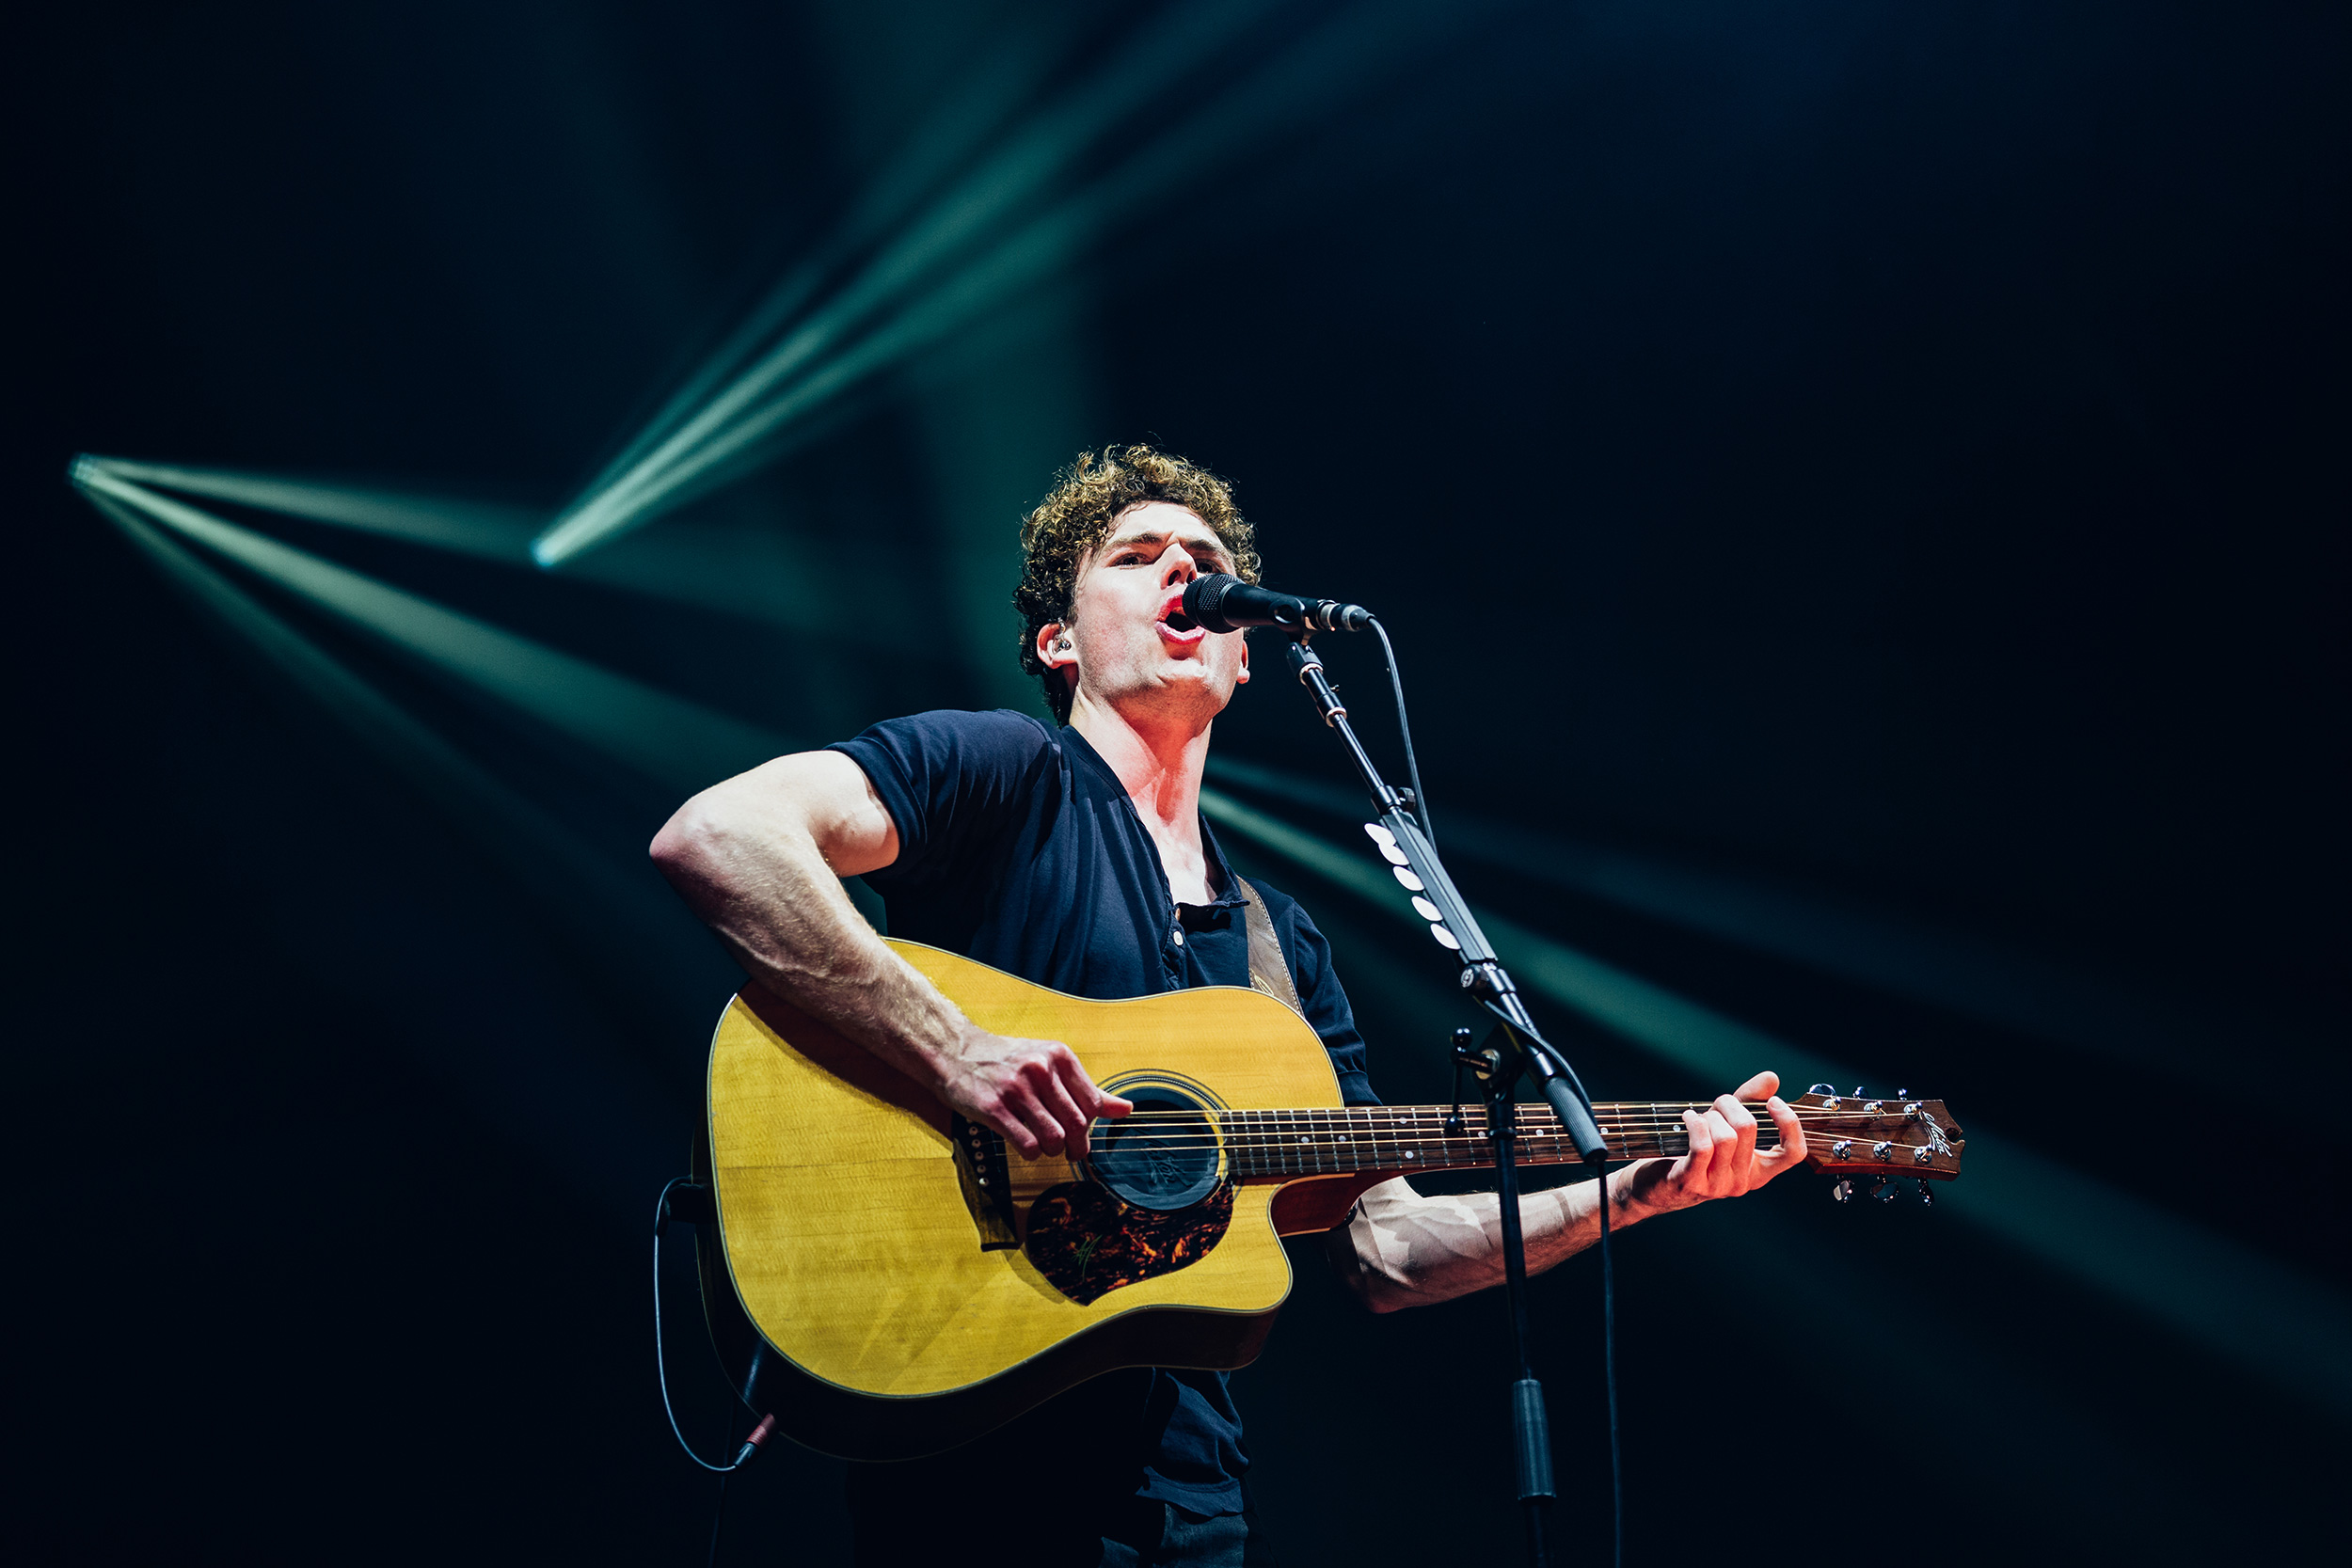 Vance_Joy_131118_Communion-(24-of-64).jpg